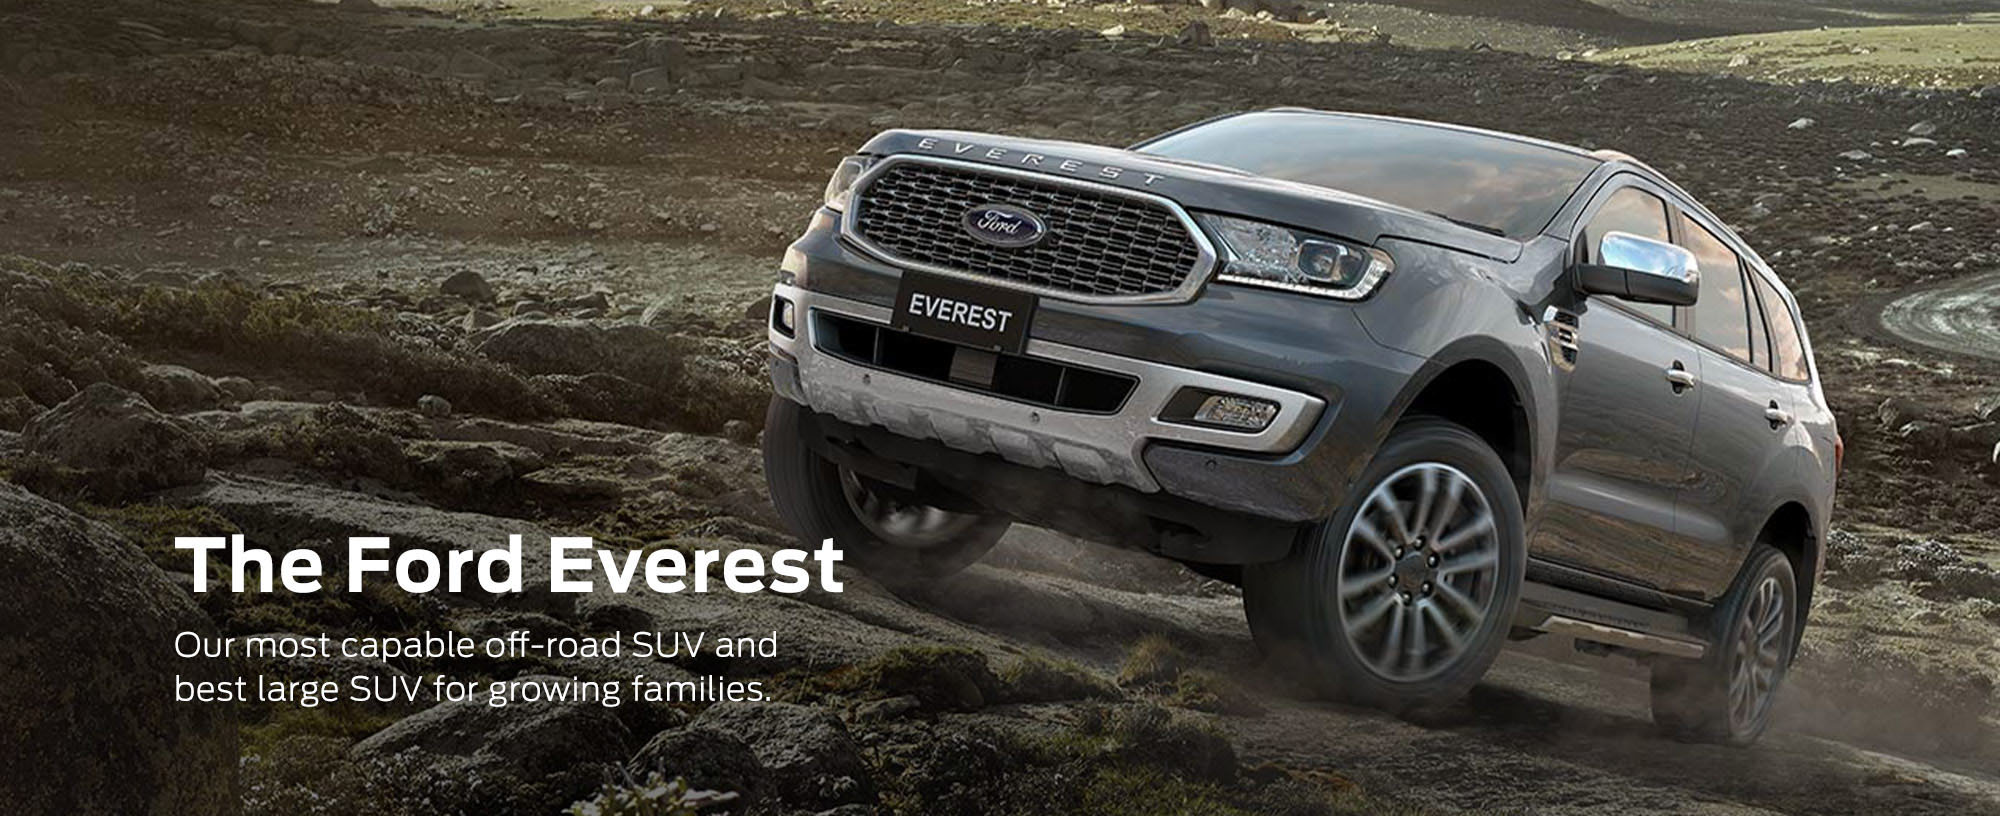 2018 Ford Everest: One Of Brand's Most Capable SUVs Ever >> Everest Bayford Ford